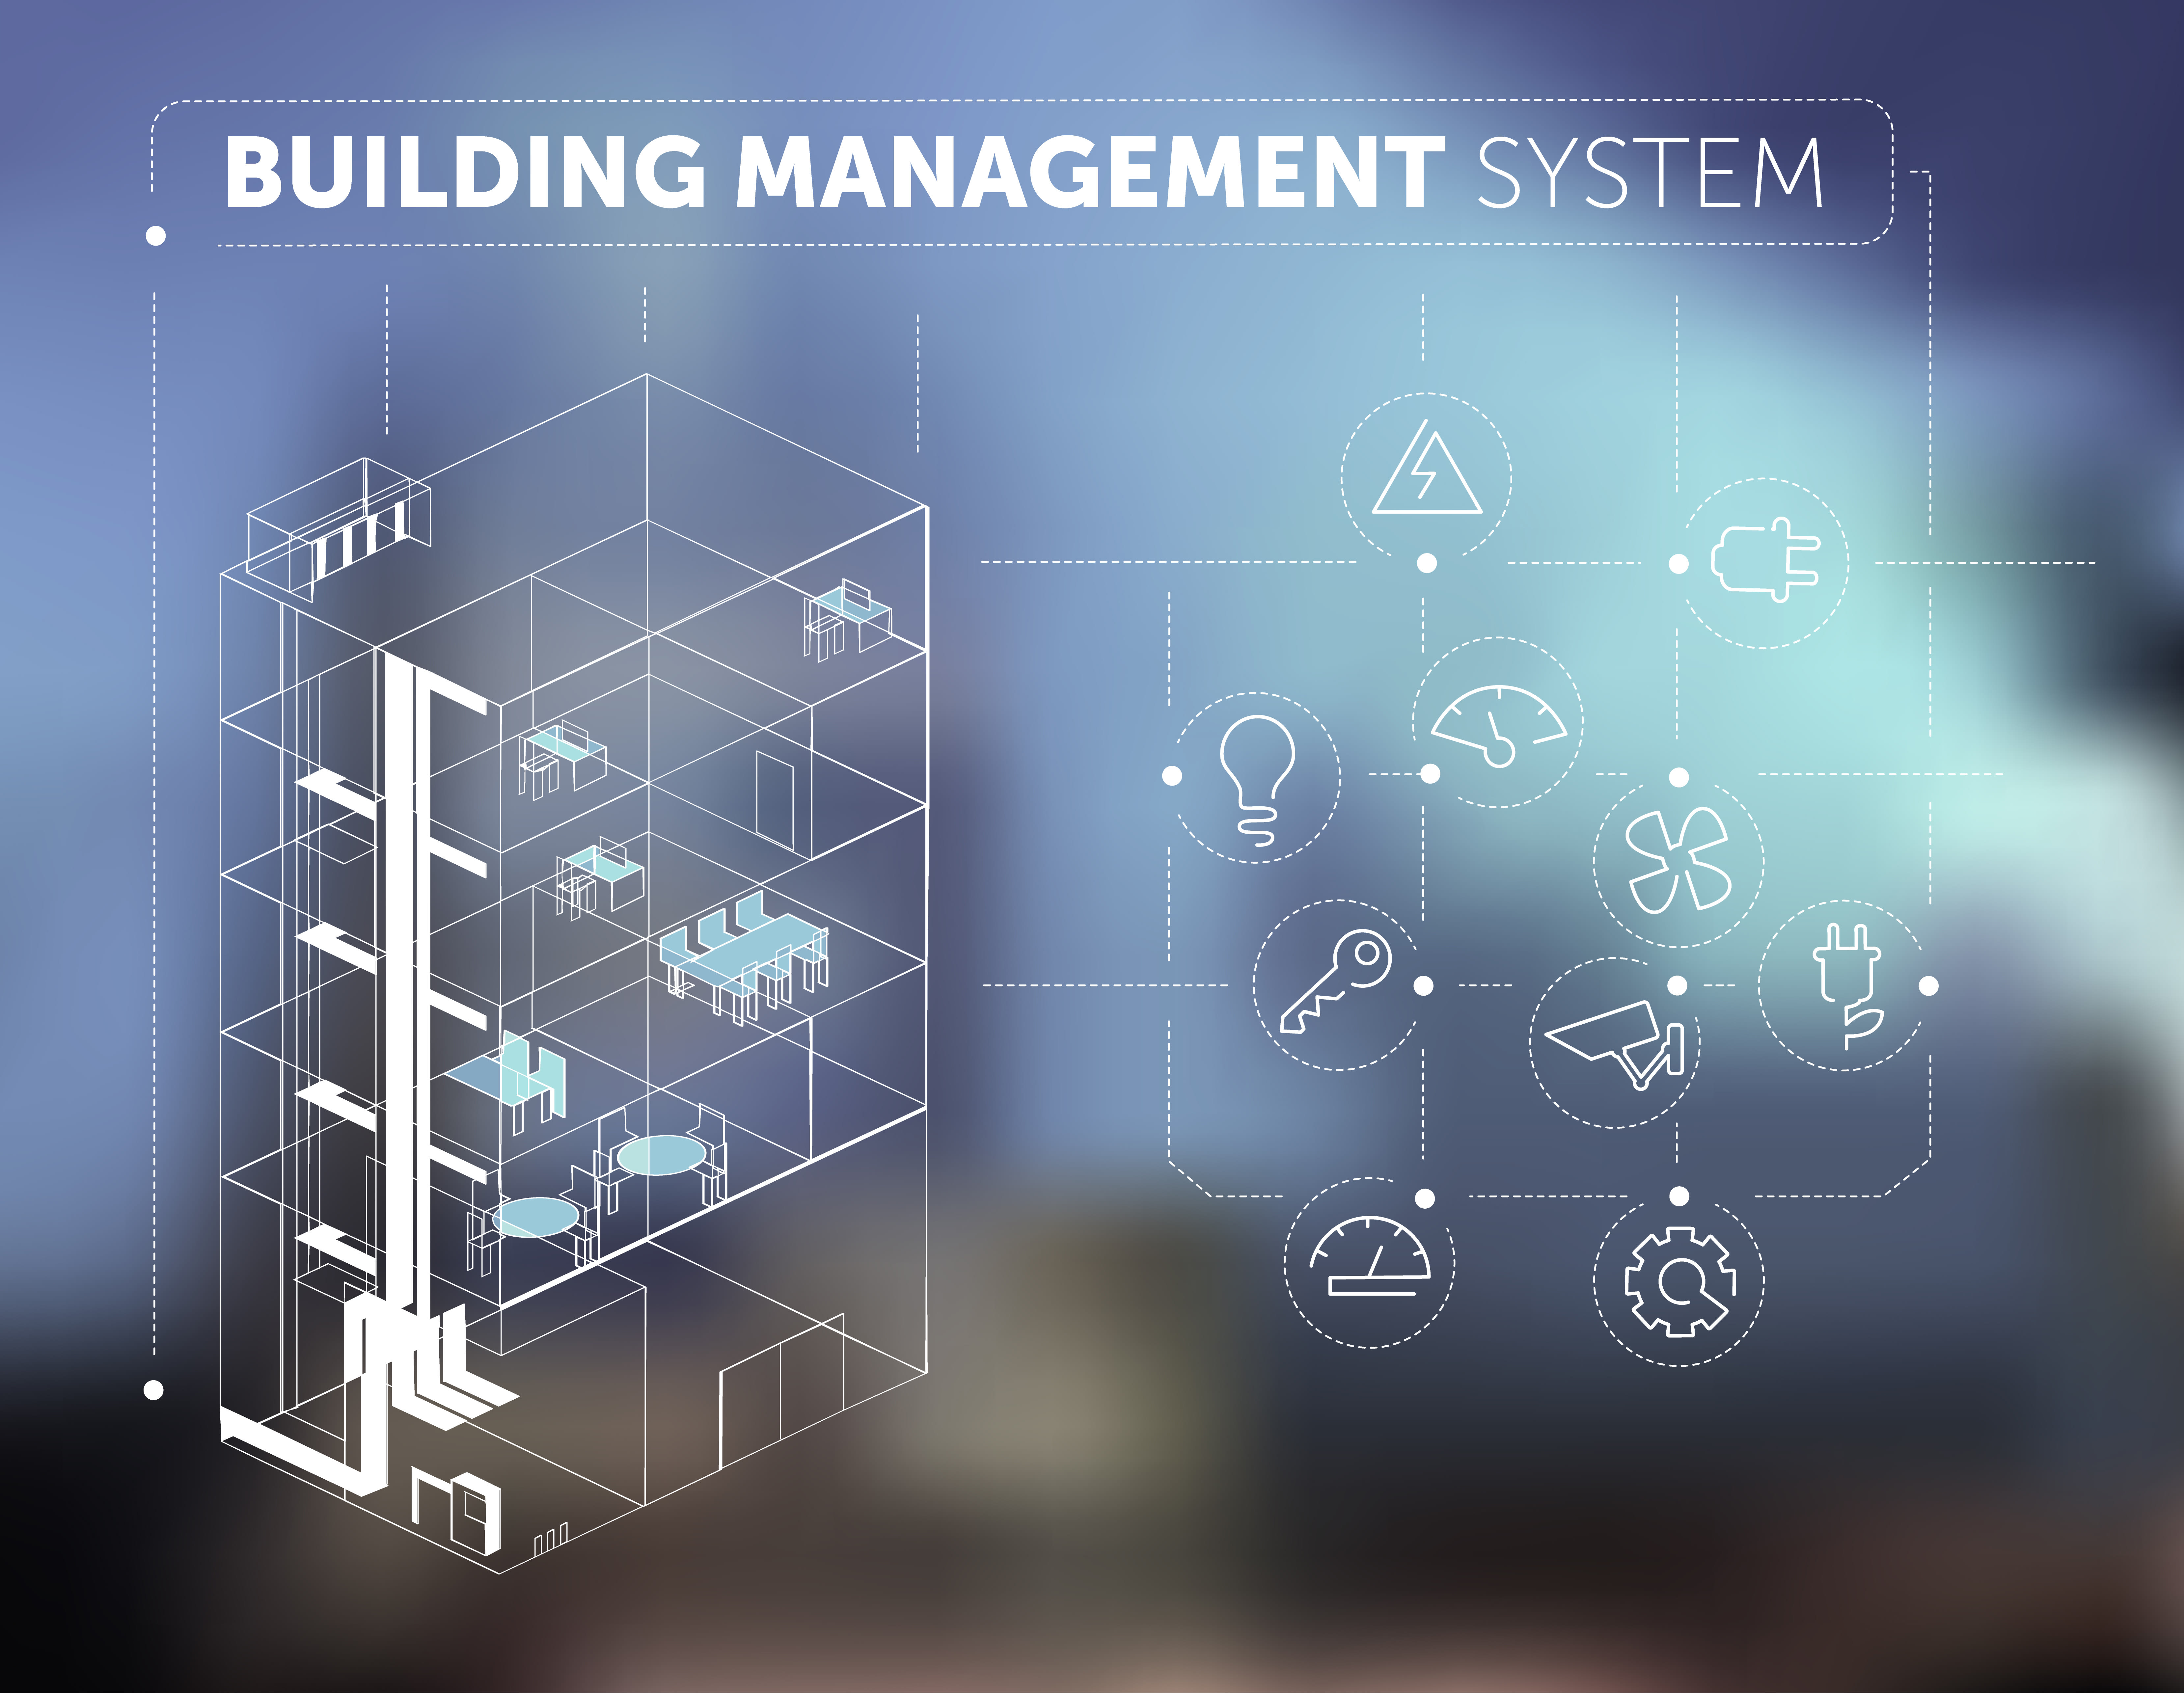 Is Building Management proving tricky during this crisis?